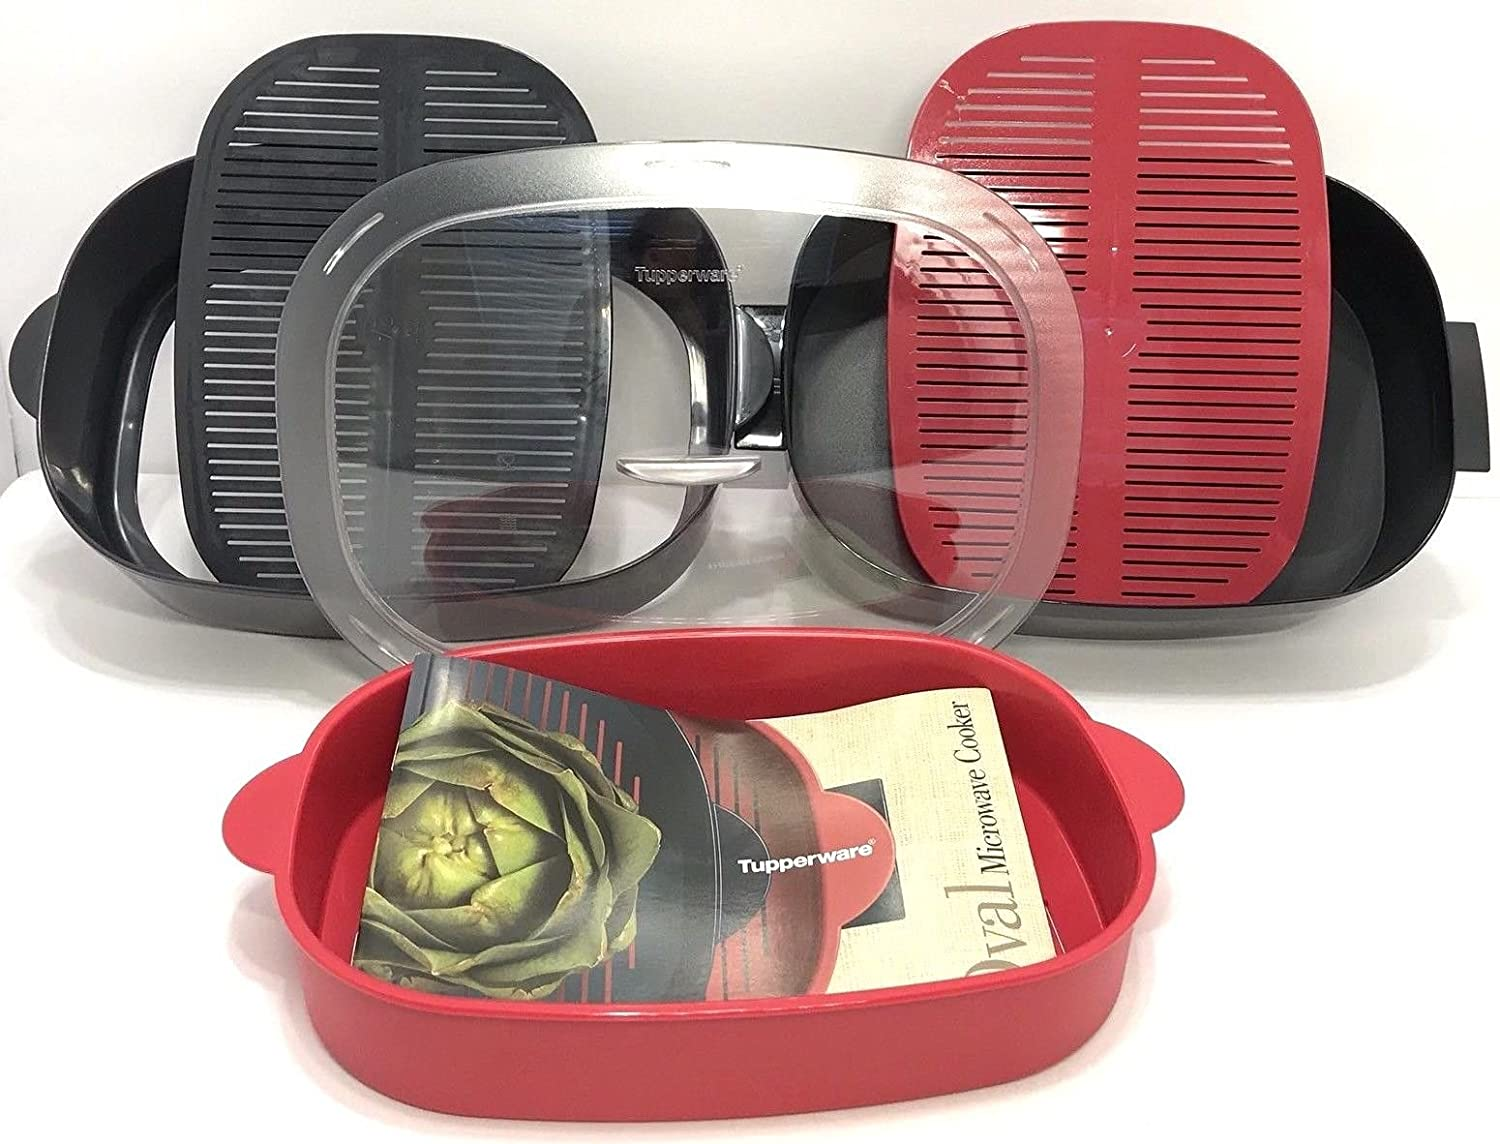 Tupperware Oval Microwave Stack Cooker Set with Recipes Red and Black